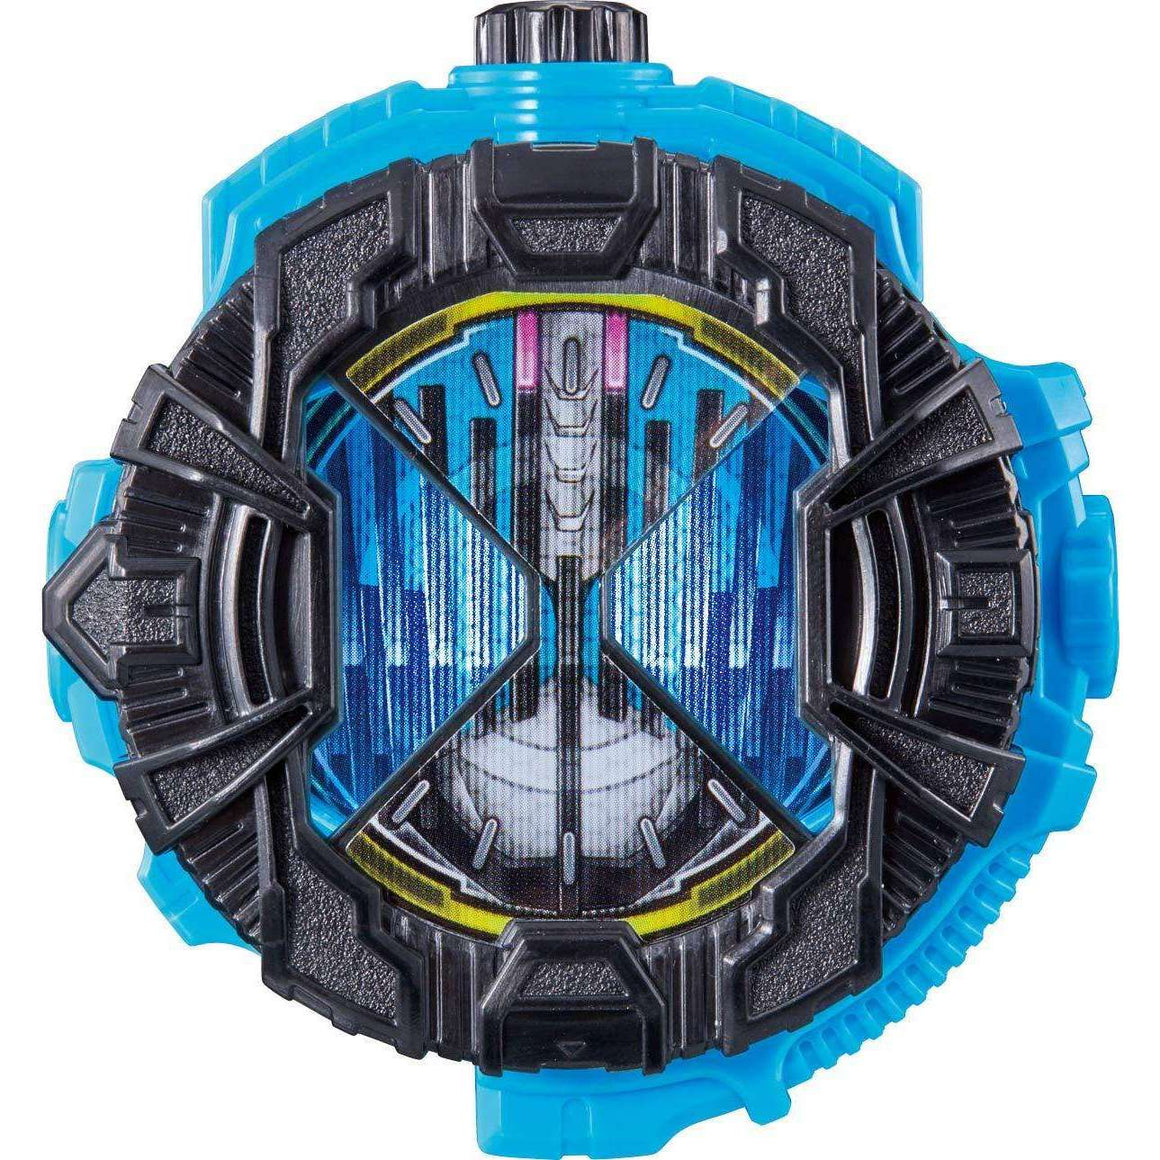 CSTOYS INTERNATIONAL:Kamen Rider Zi-O: DX Time Mazine Geiz Mode & DiEnd Ride Watch